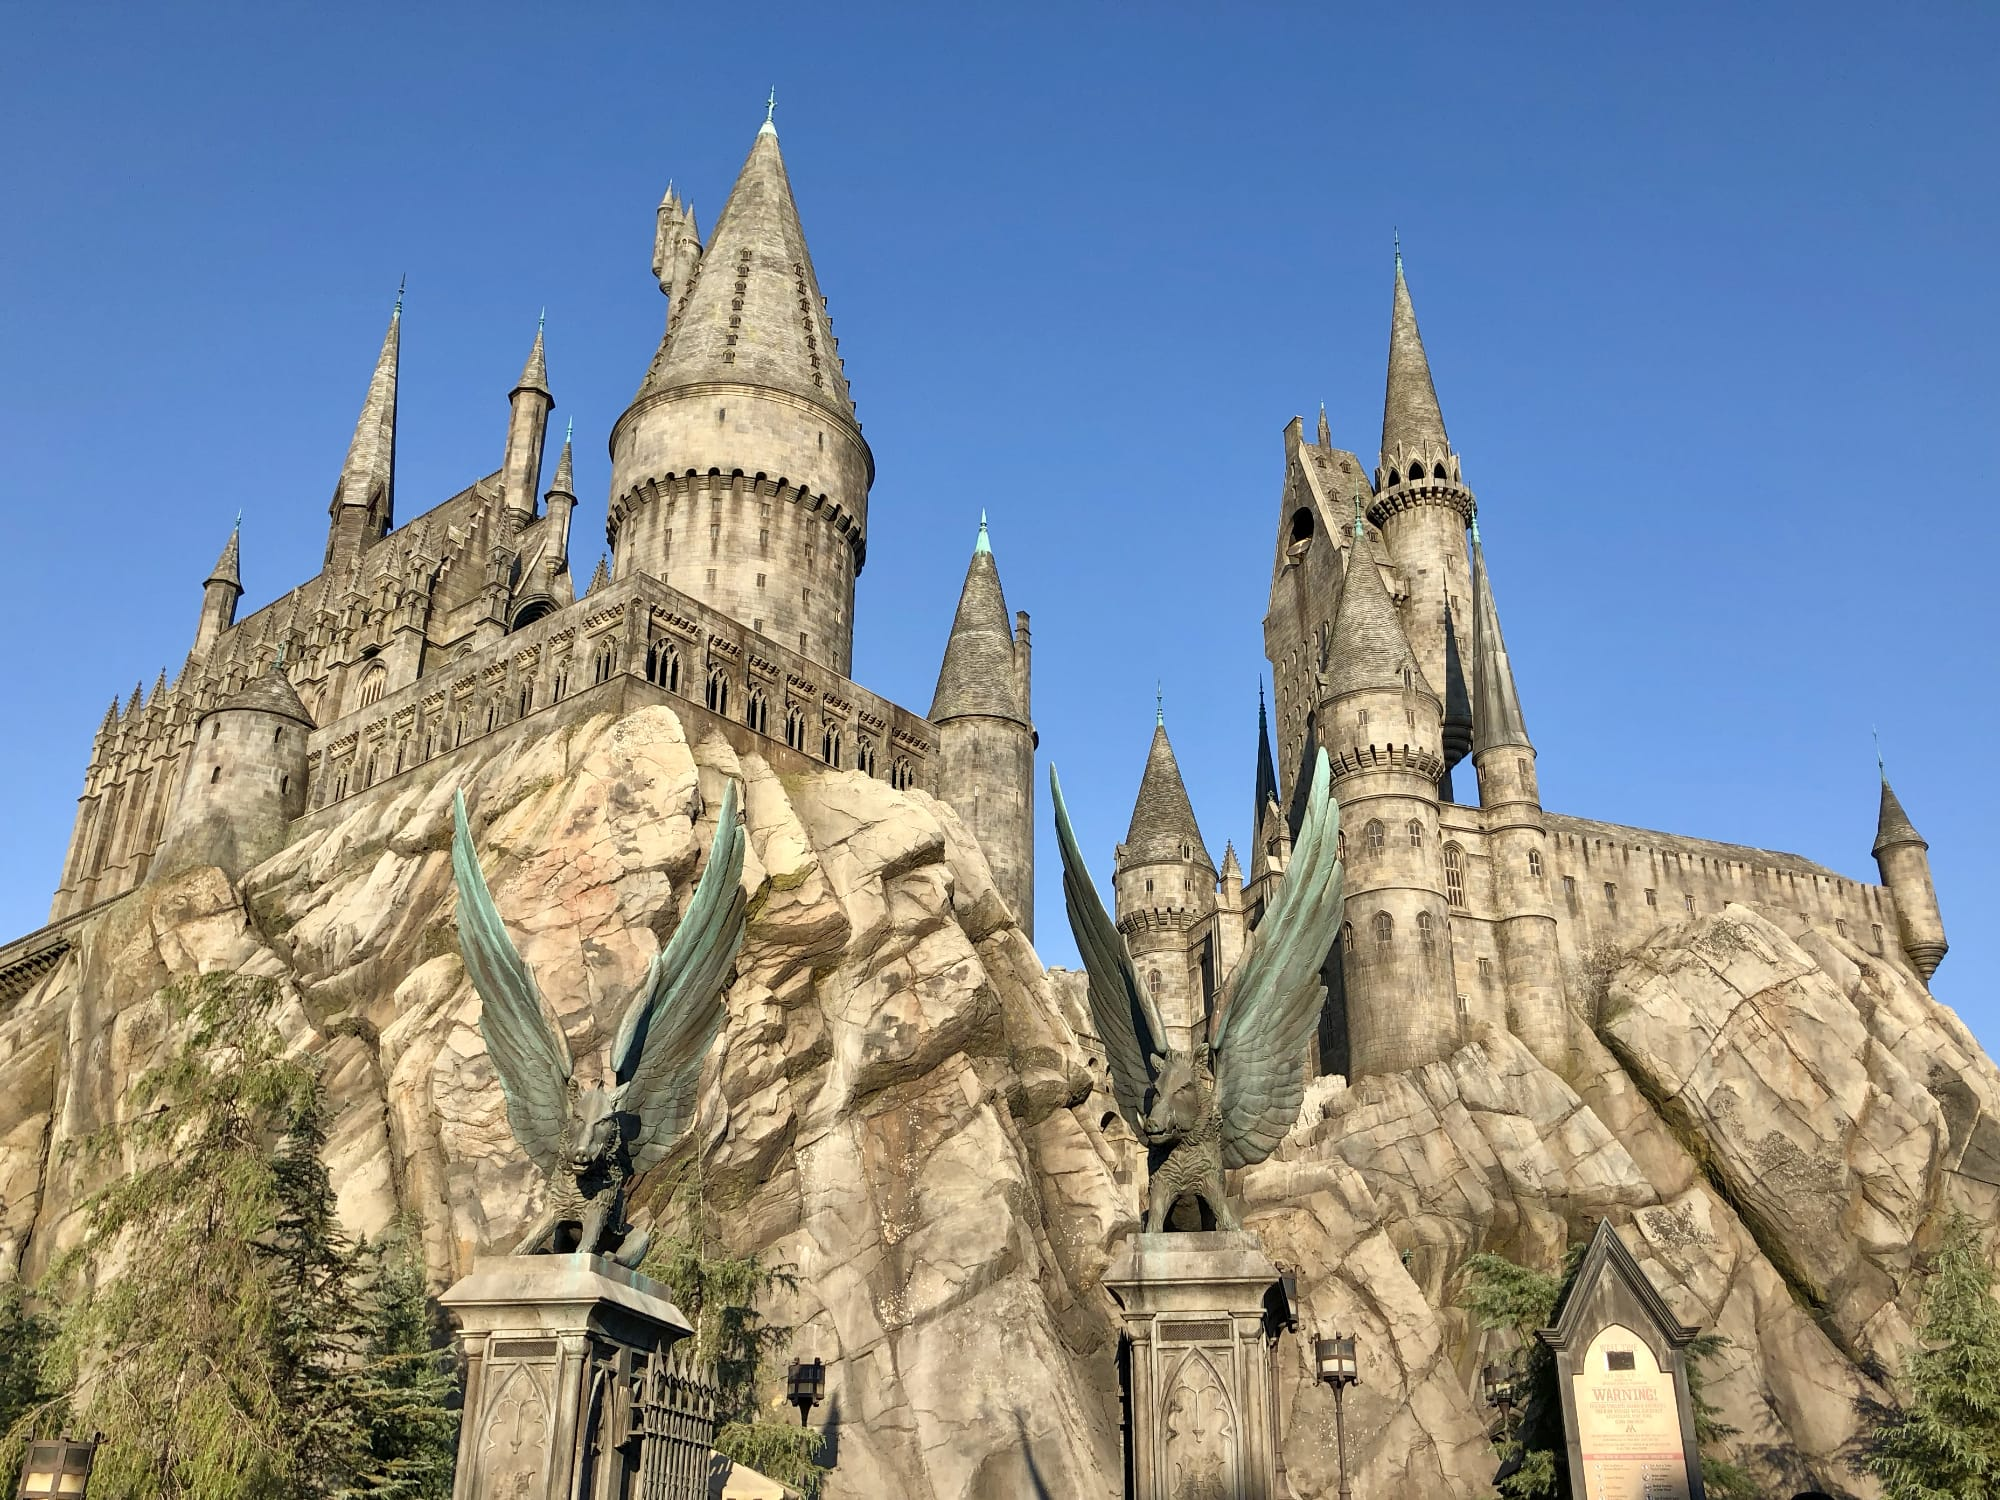 Wizarding World of Harry Potter, Universal Studios